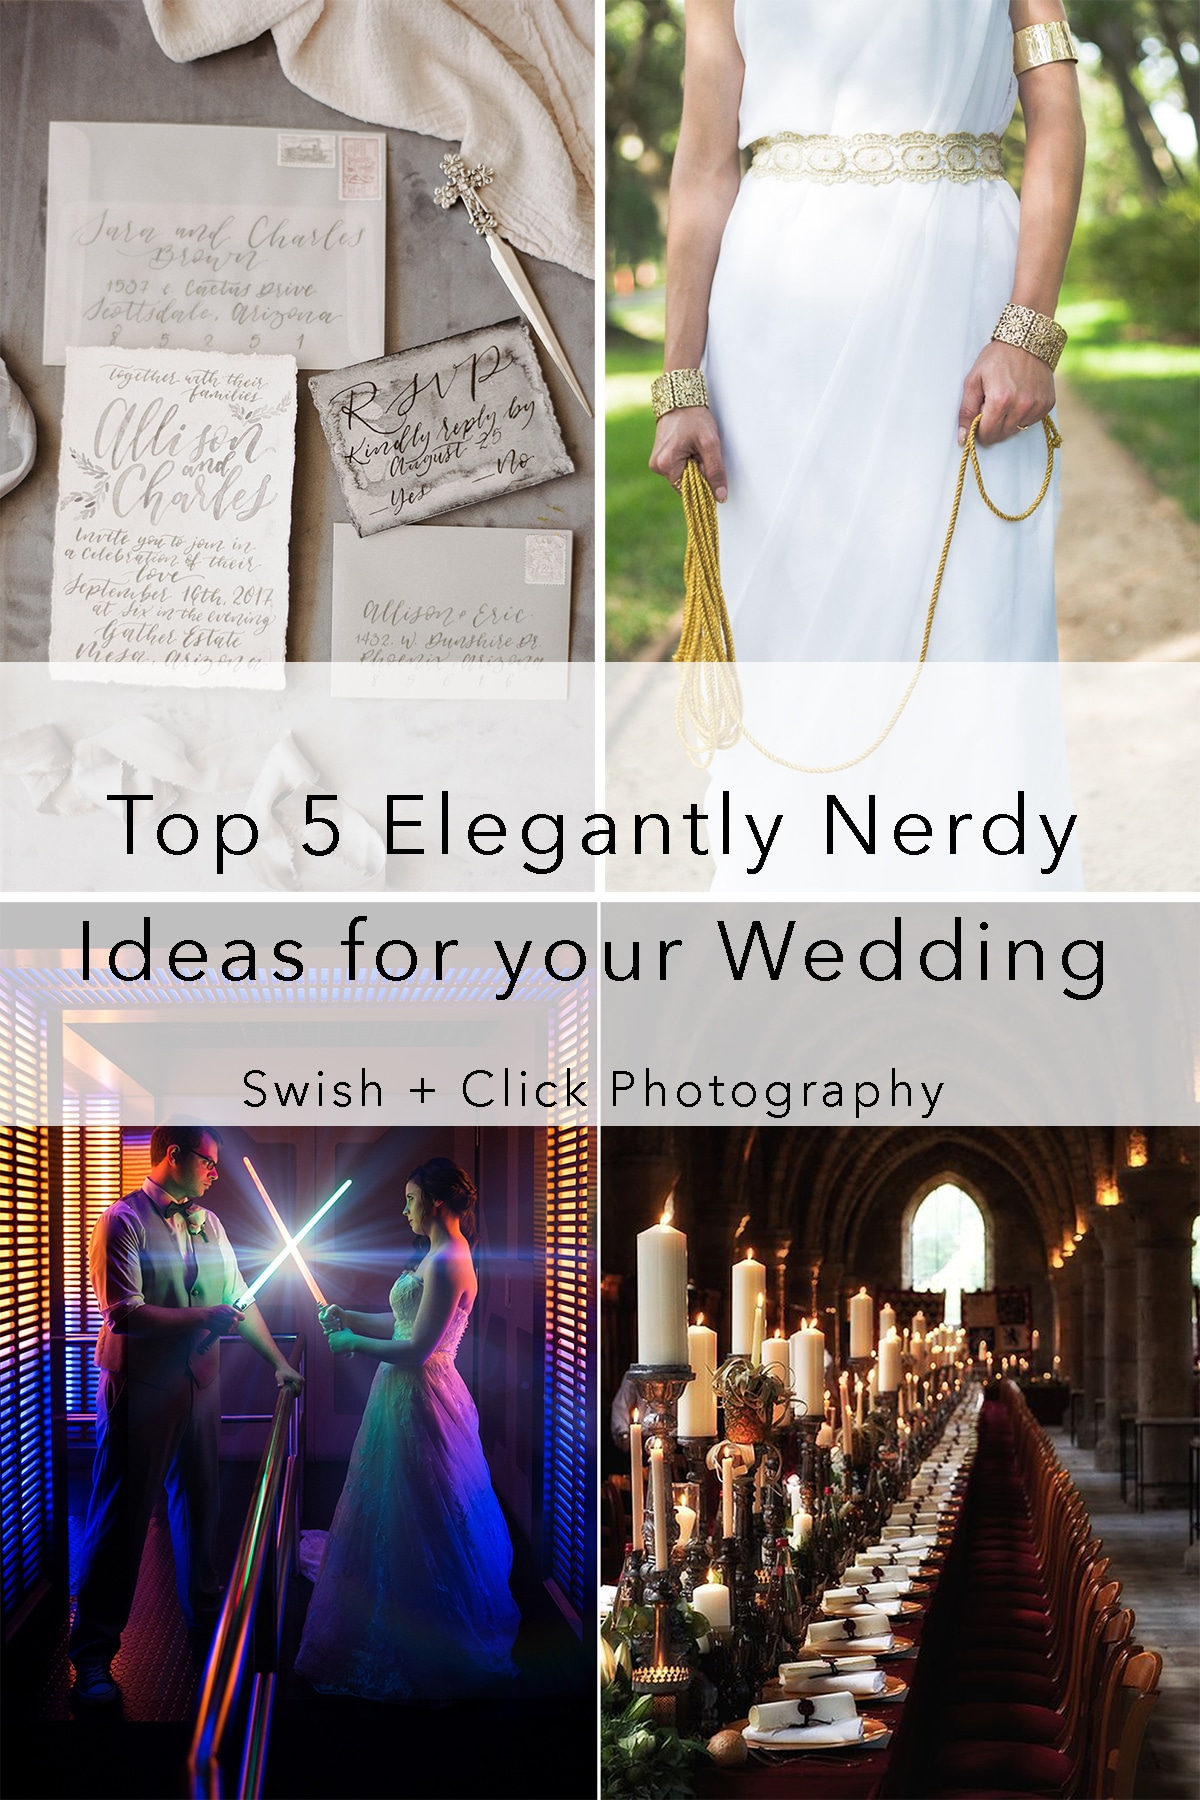 Top 5 Elegantly Nerdy Themes for Your Wedding